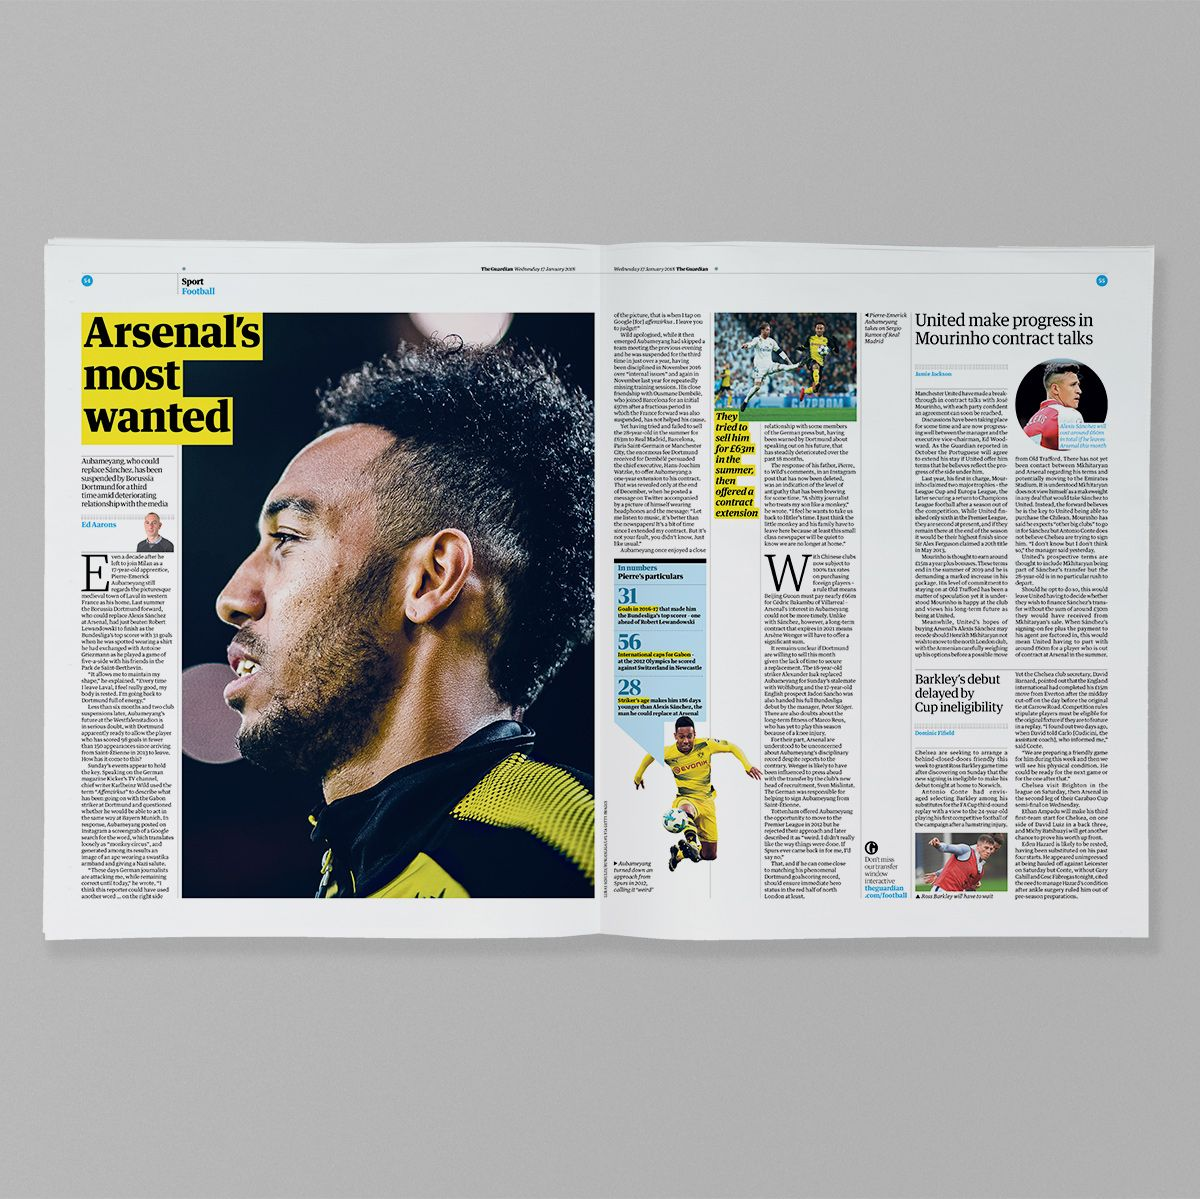 Guardian Sport Editorialdesign Newsdesign Graphicdesign Sportsdesign Thiết Kế